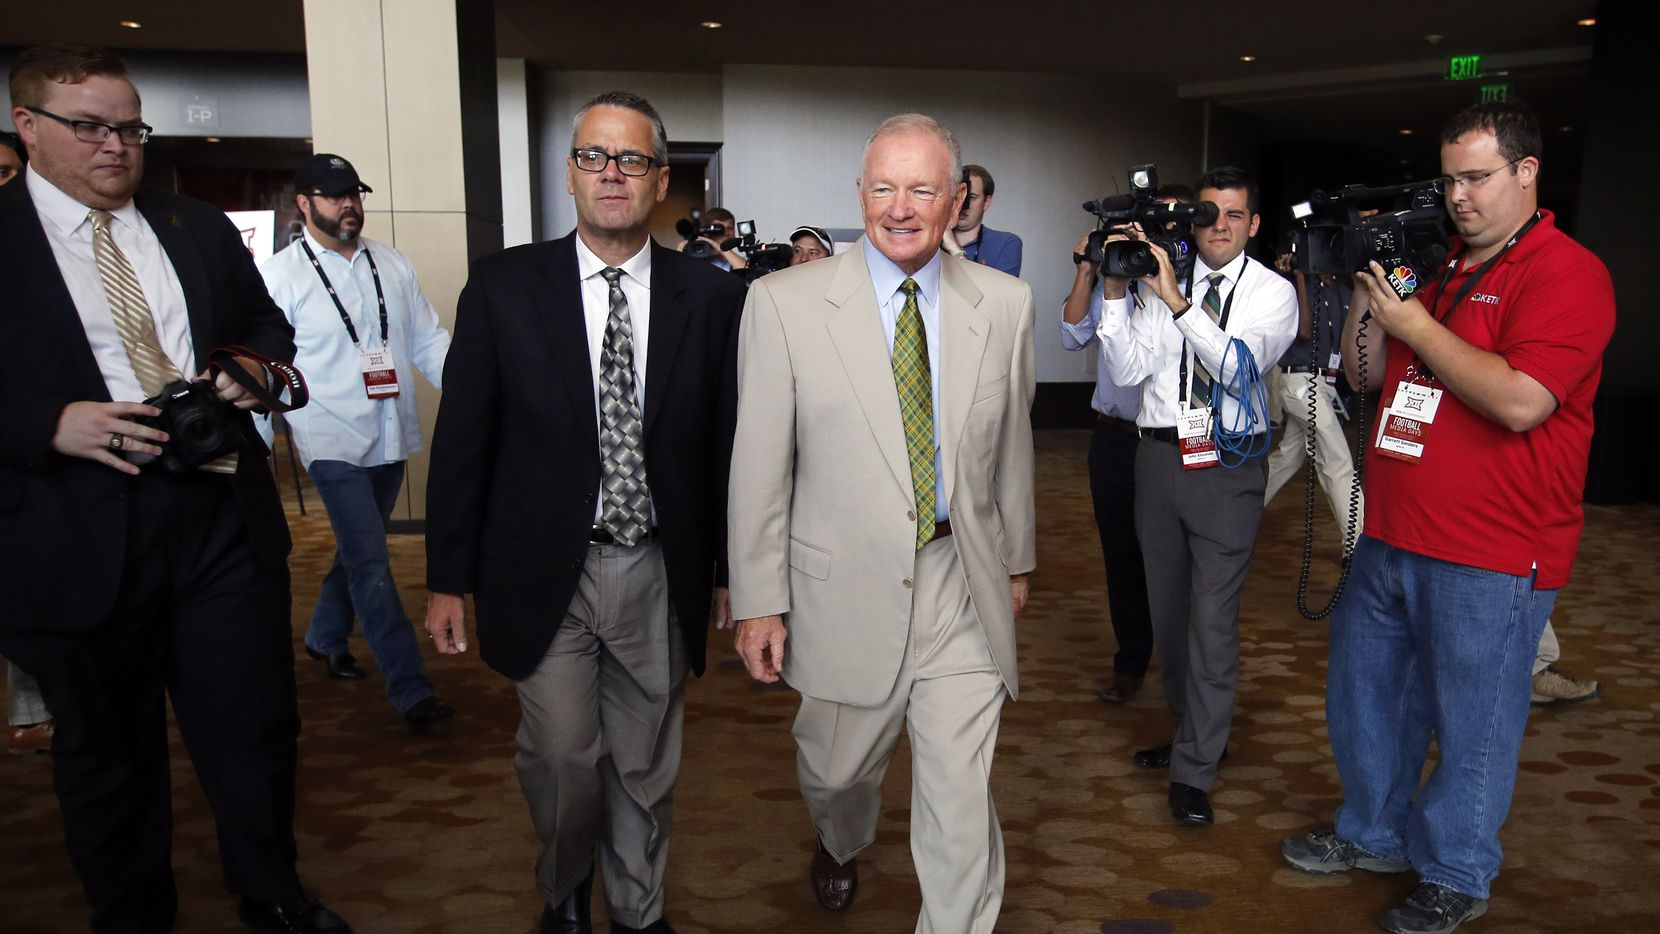 New Baylor head football coach Jim Grobe (center, right) is escorted out of the Big 12 Conference Football Media Days following his Q&A with reporters at the Omni Dallas Hotel, July 19, 2016. (Tom Fox/The Dallas Morning News)